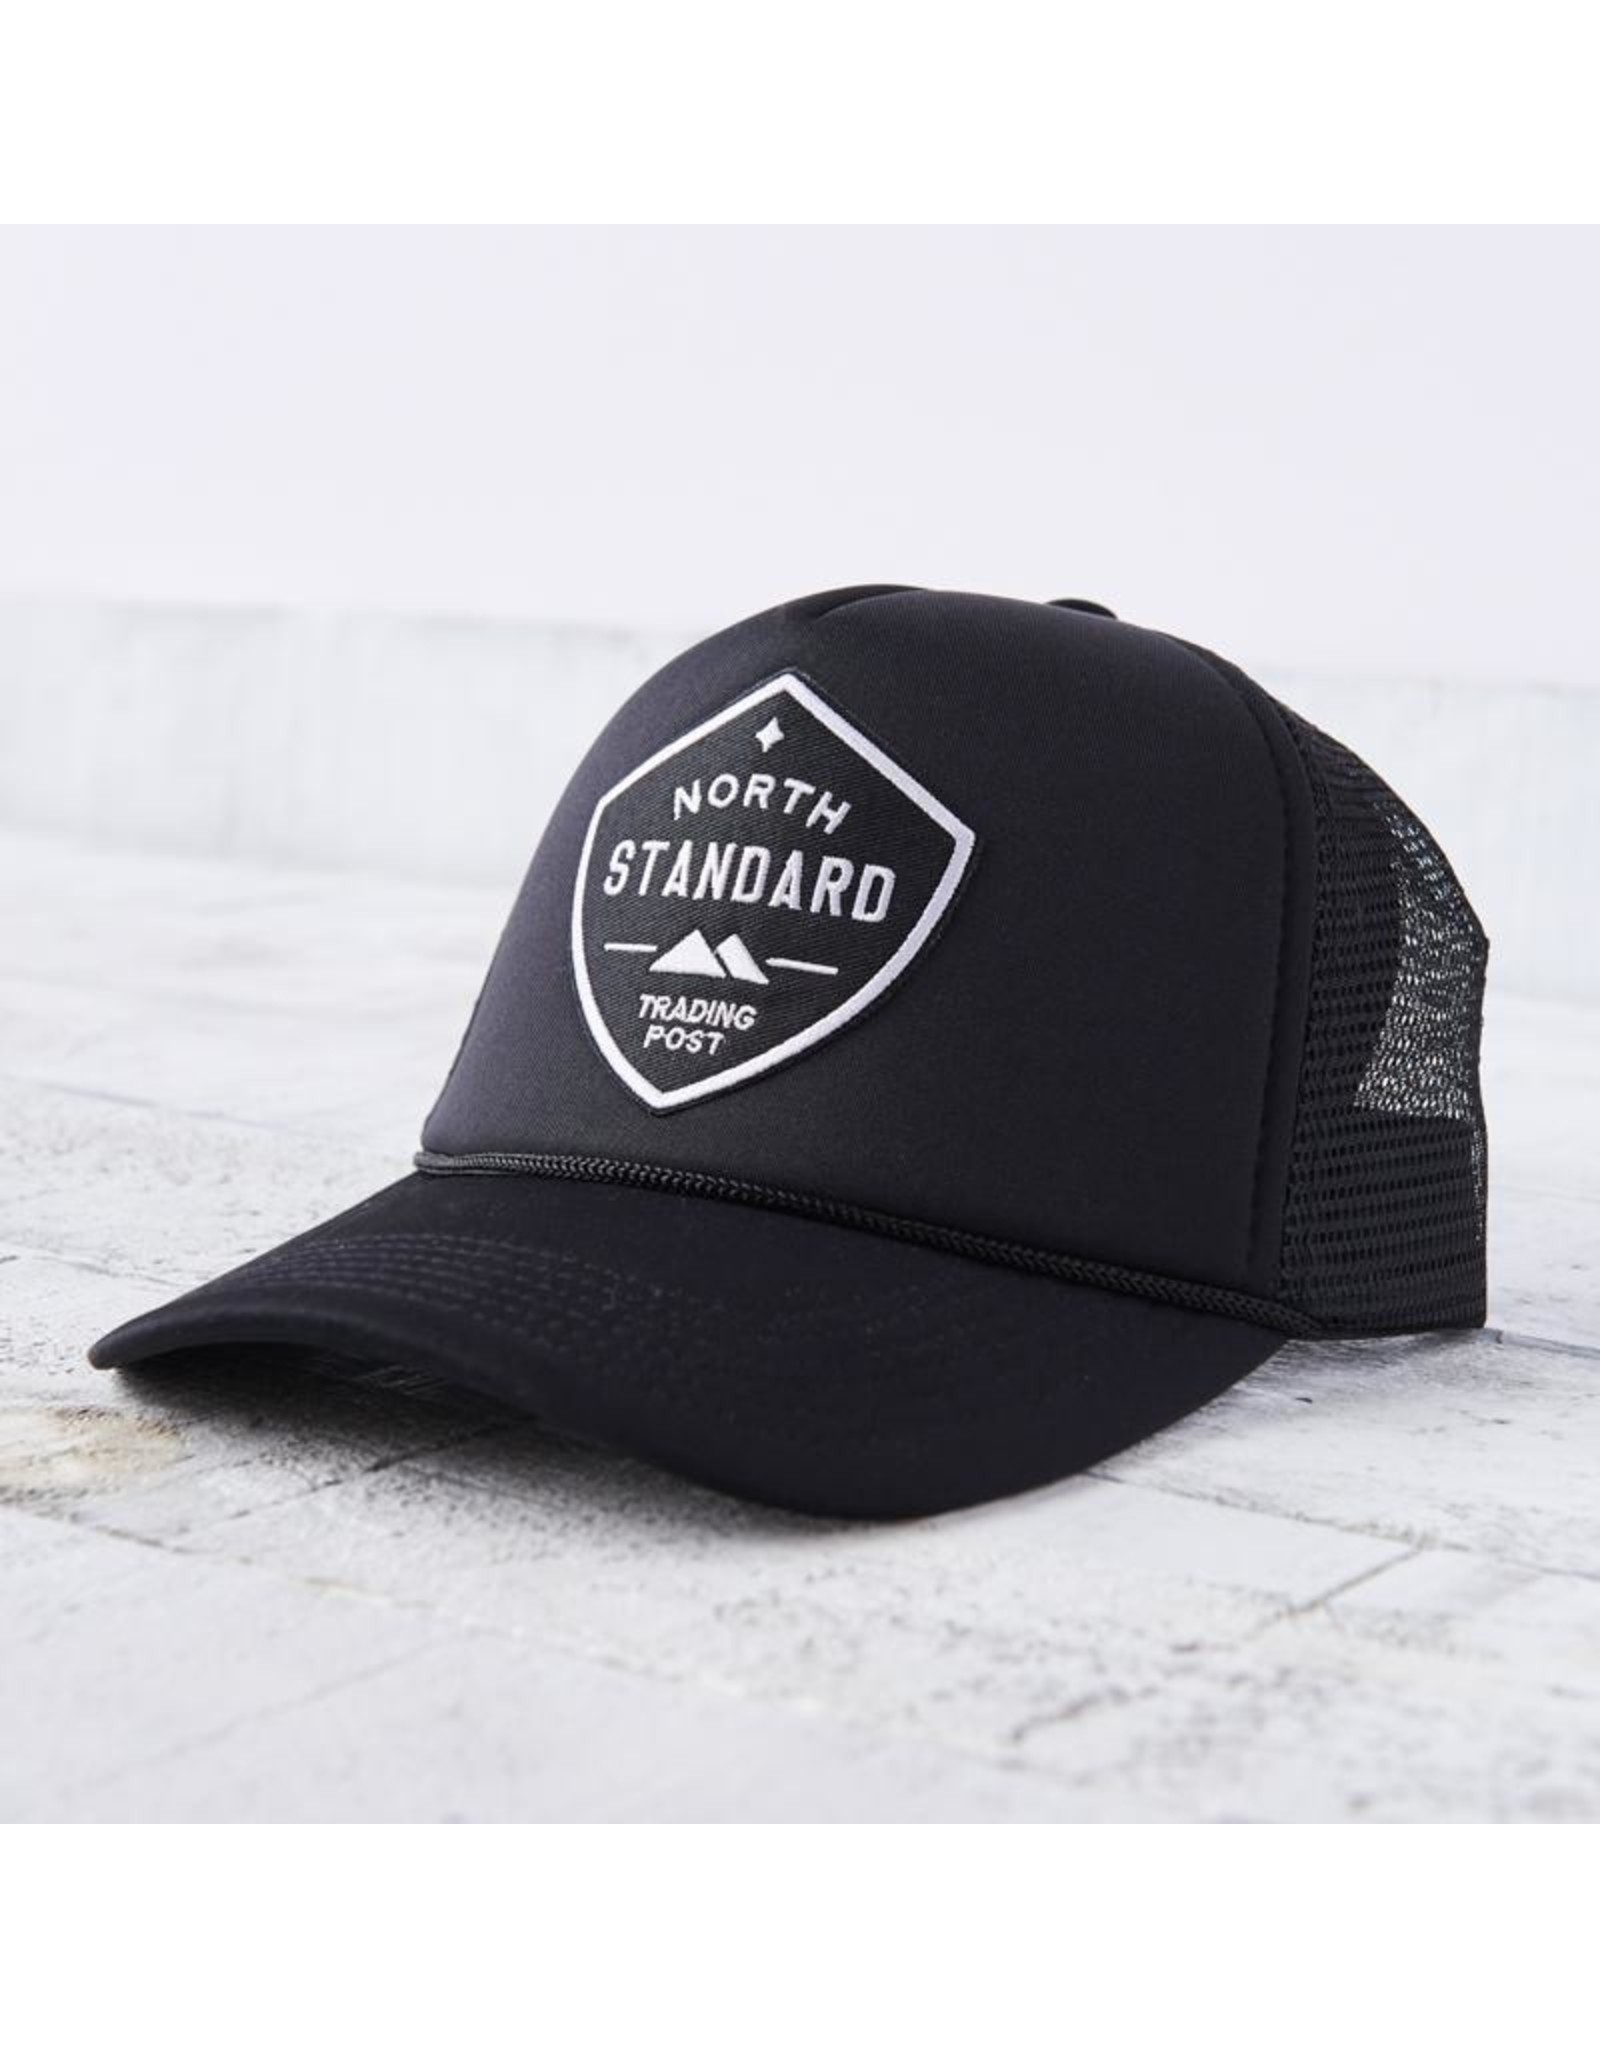 North Standard - Mesh Trucker Hat Blk/Wh Shield